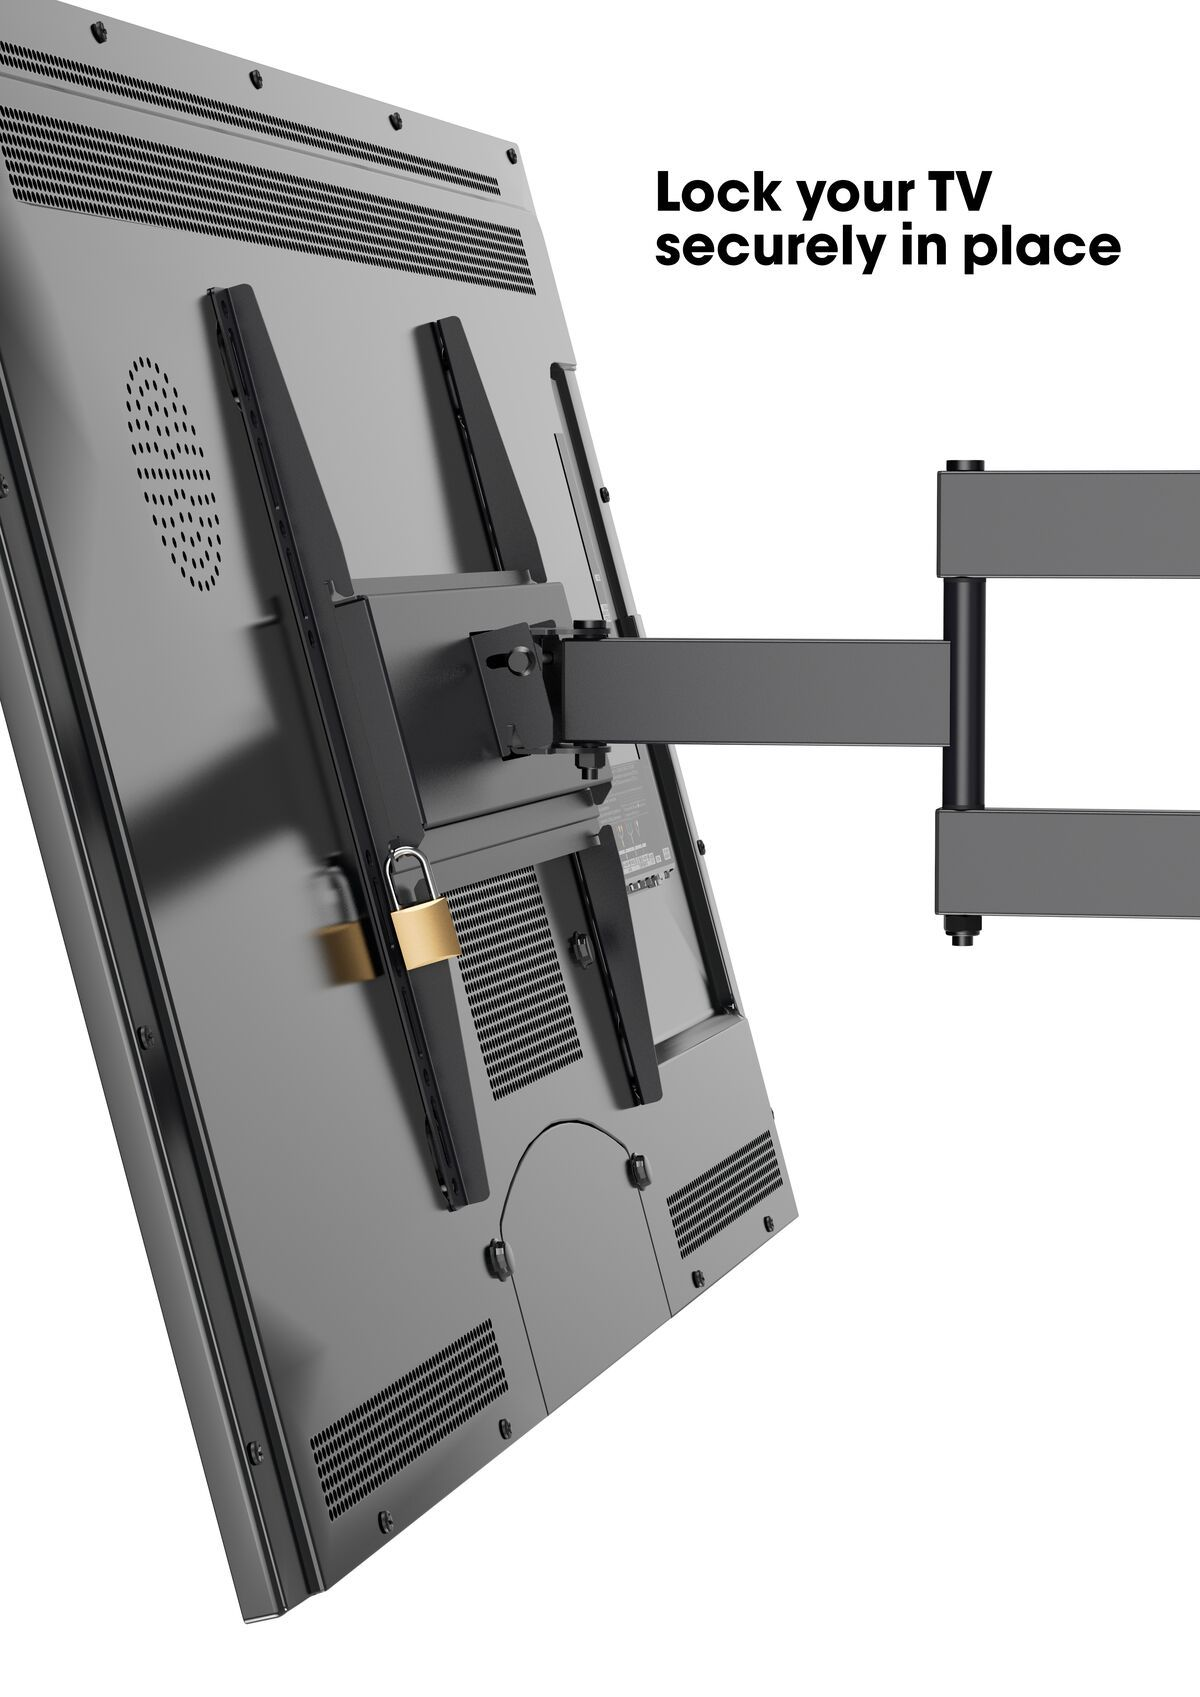 Vogel's MA 3040 (A1) Full-Motion TV Wall Mount - Suitable for 32 up to 55 inch TVs - Full motion (up to 180°) - Tilt up to 10° - USP